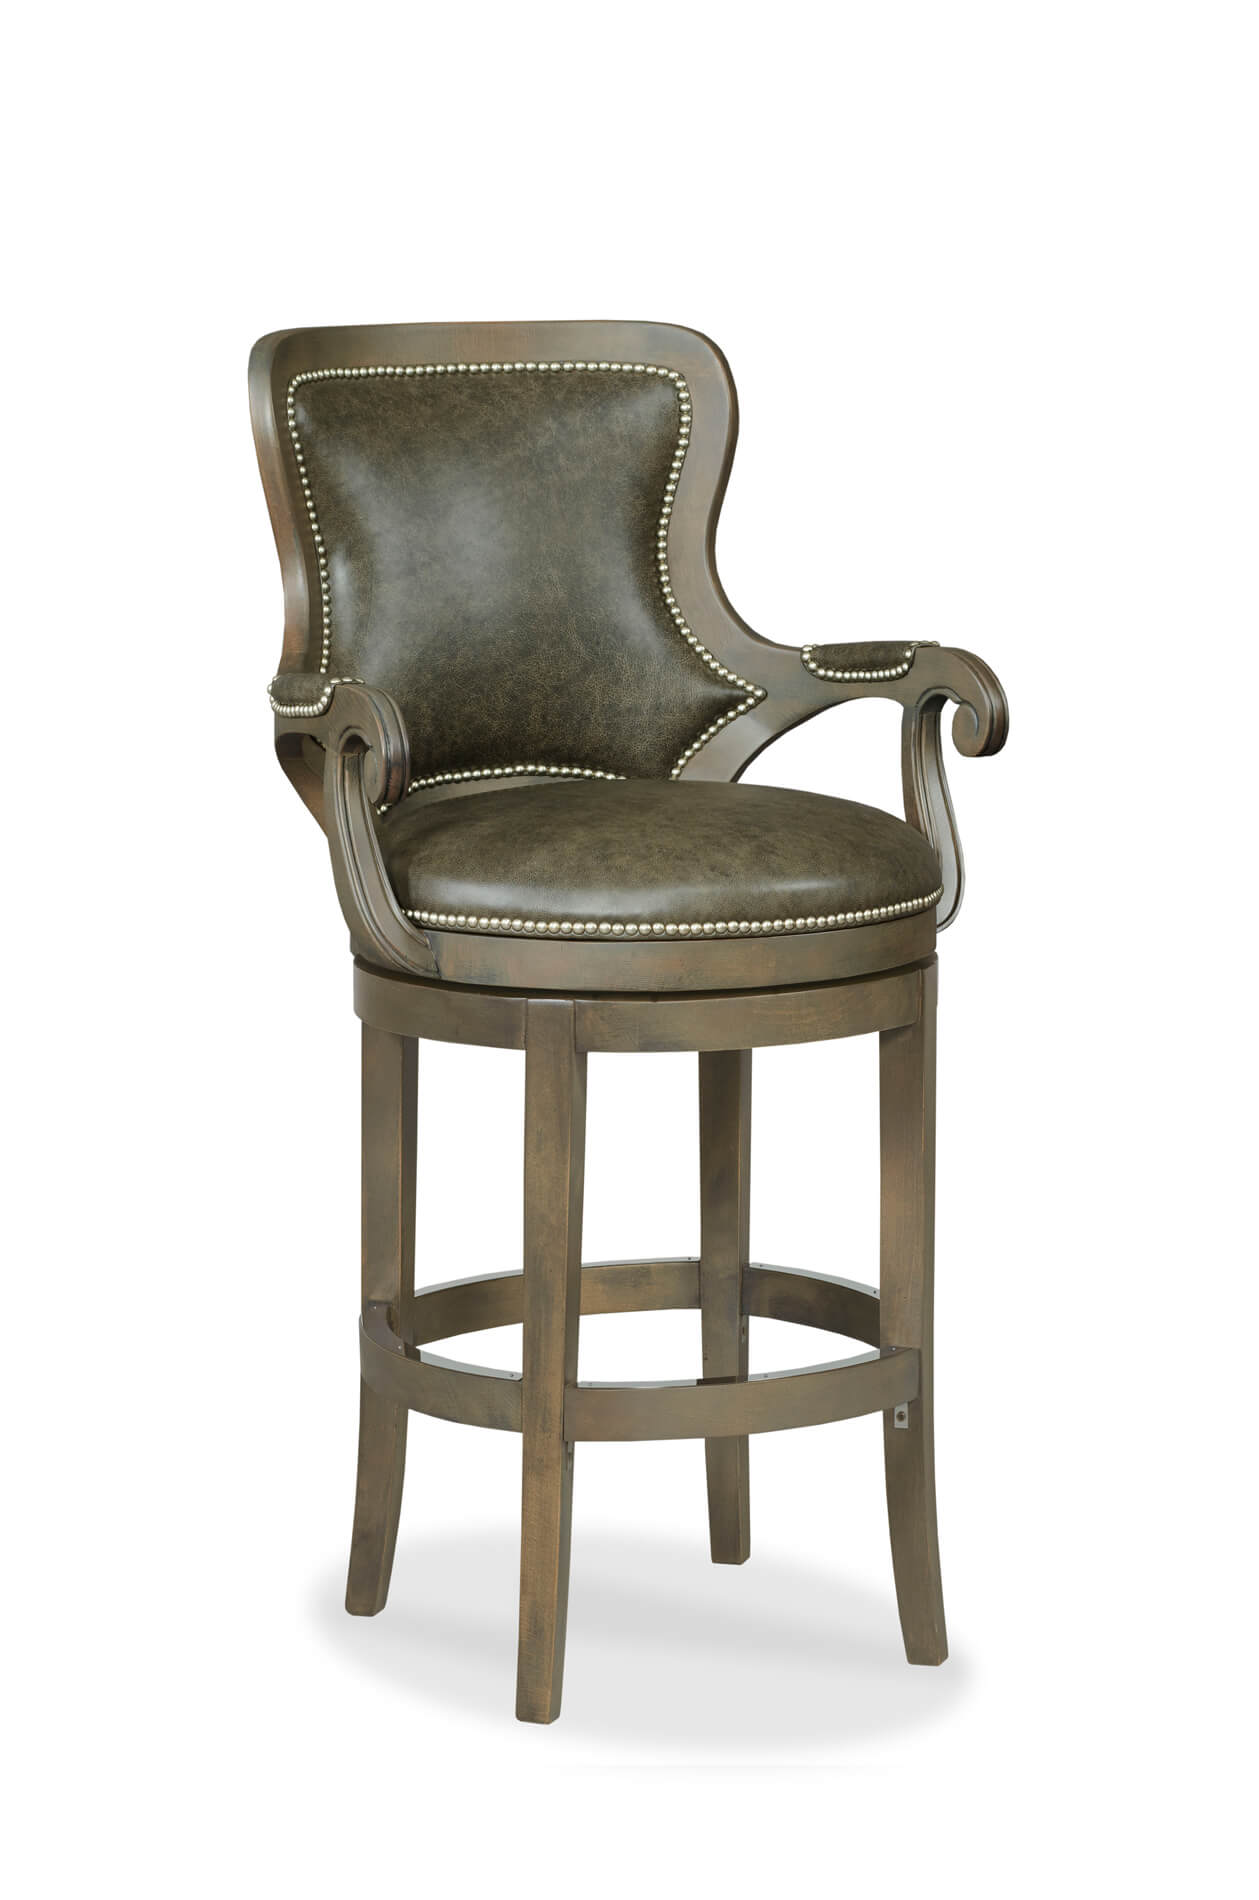 Amazing Spritzer Wooden Upholstered Swivel Stool With Arms Uwap Interior Chair Design Uwaporg